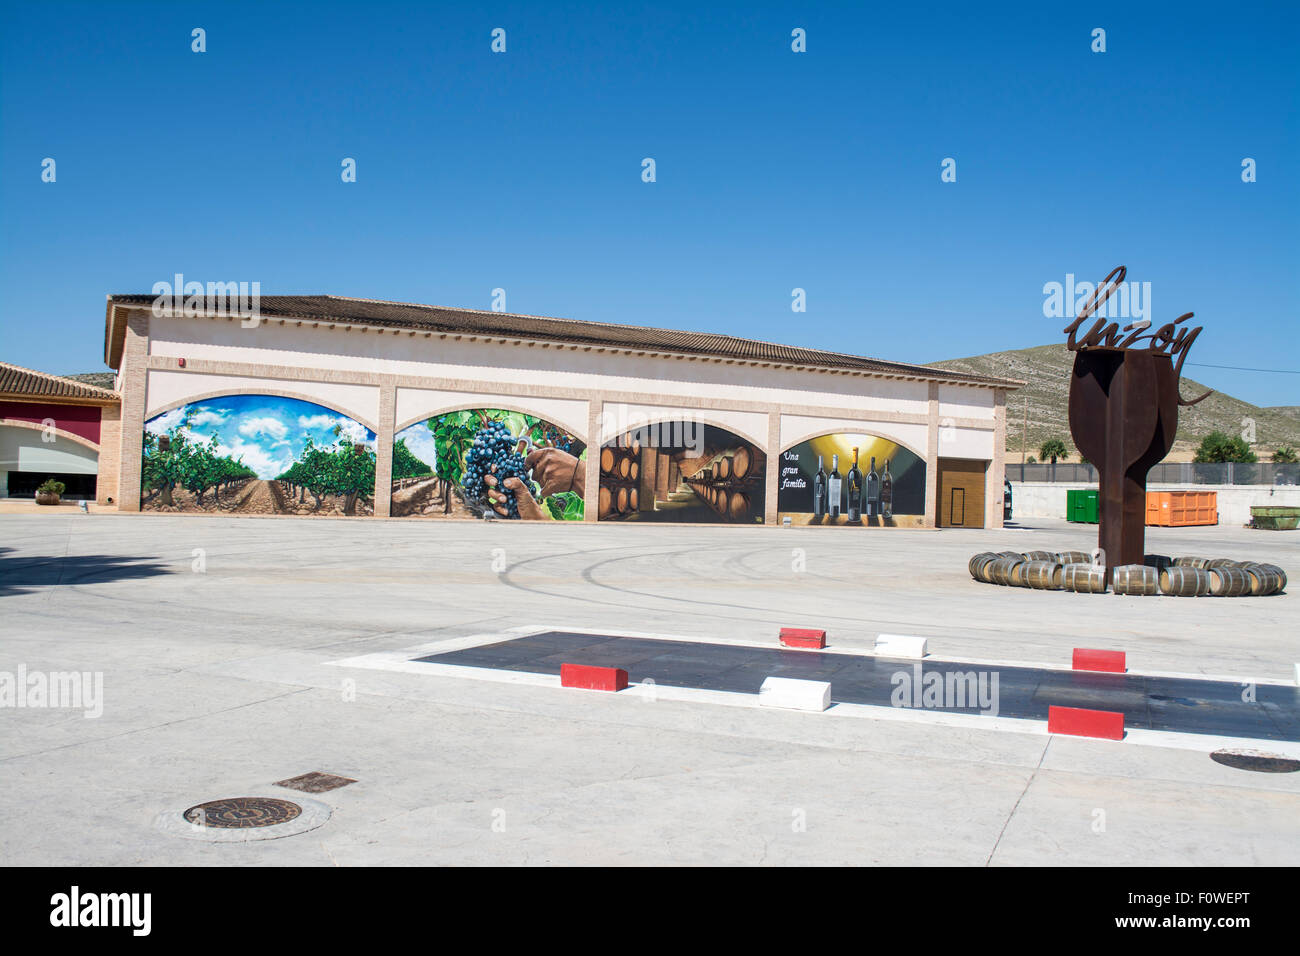 Entrance to the Luzon Bodega, Jumilla, Province of Murcia, Spain - Stock Image